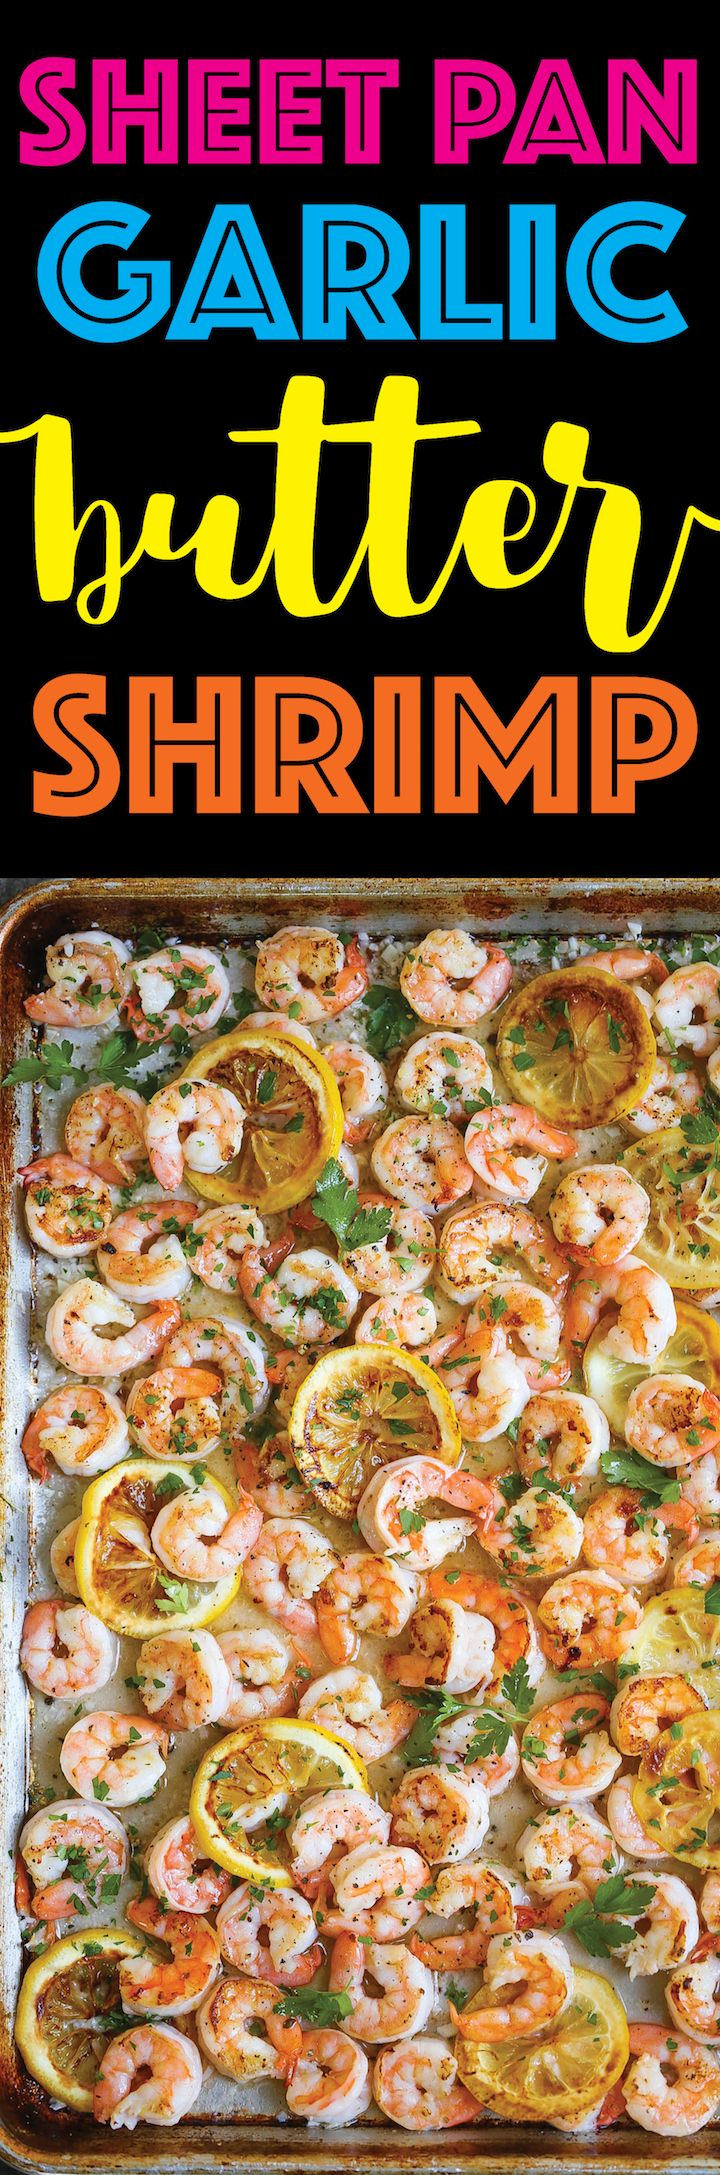 Sheet Pan Garlic Butter Shrimp - A complete sheet pan dinner with only 5 ingredients. YES! JUST 5!!! Plus, who can resist that garlic butter sauce, right?